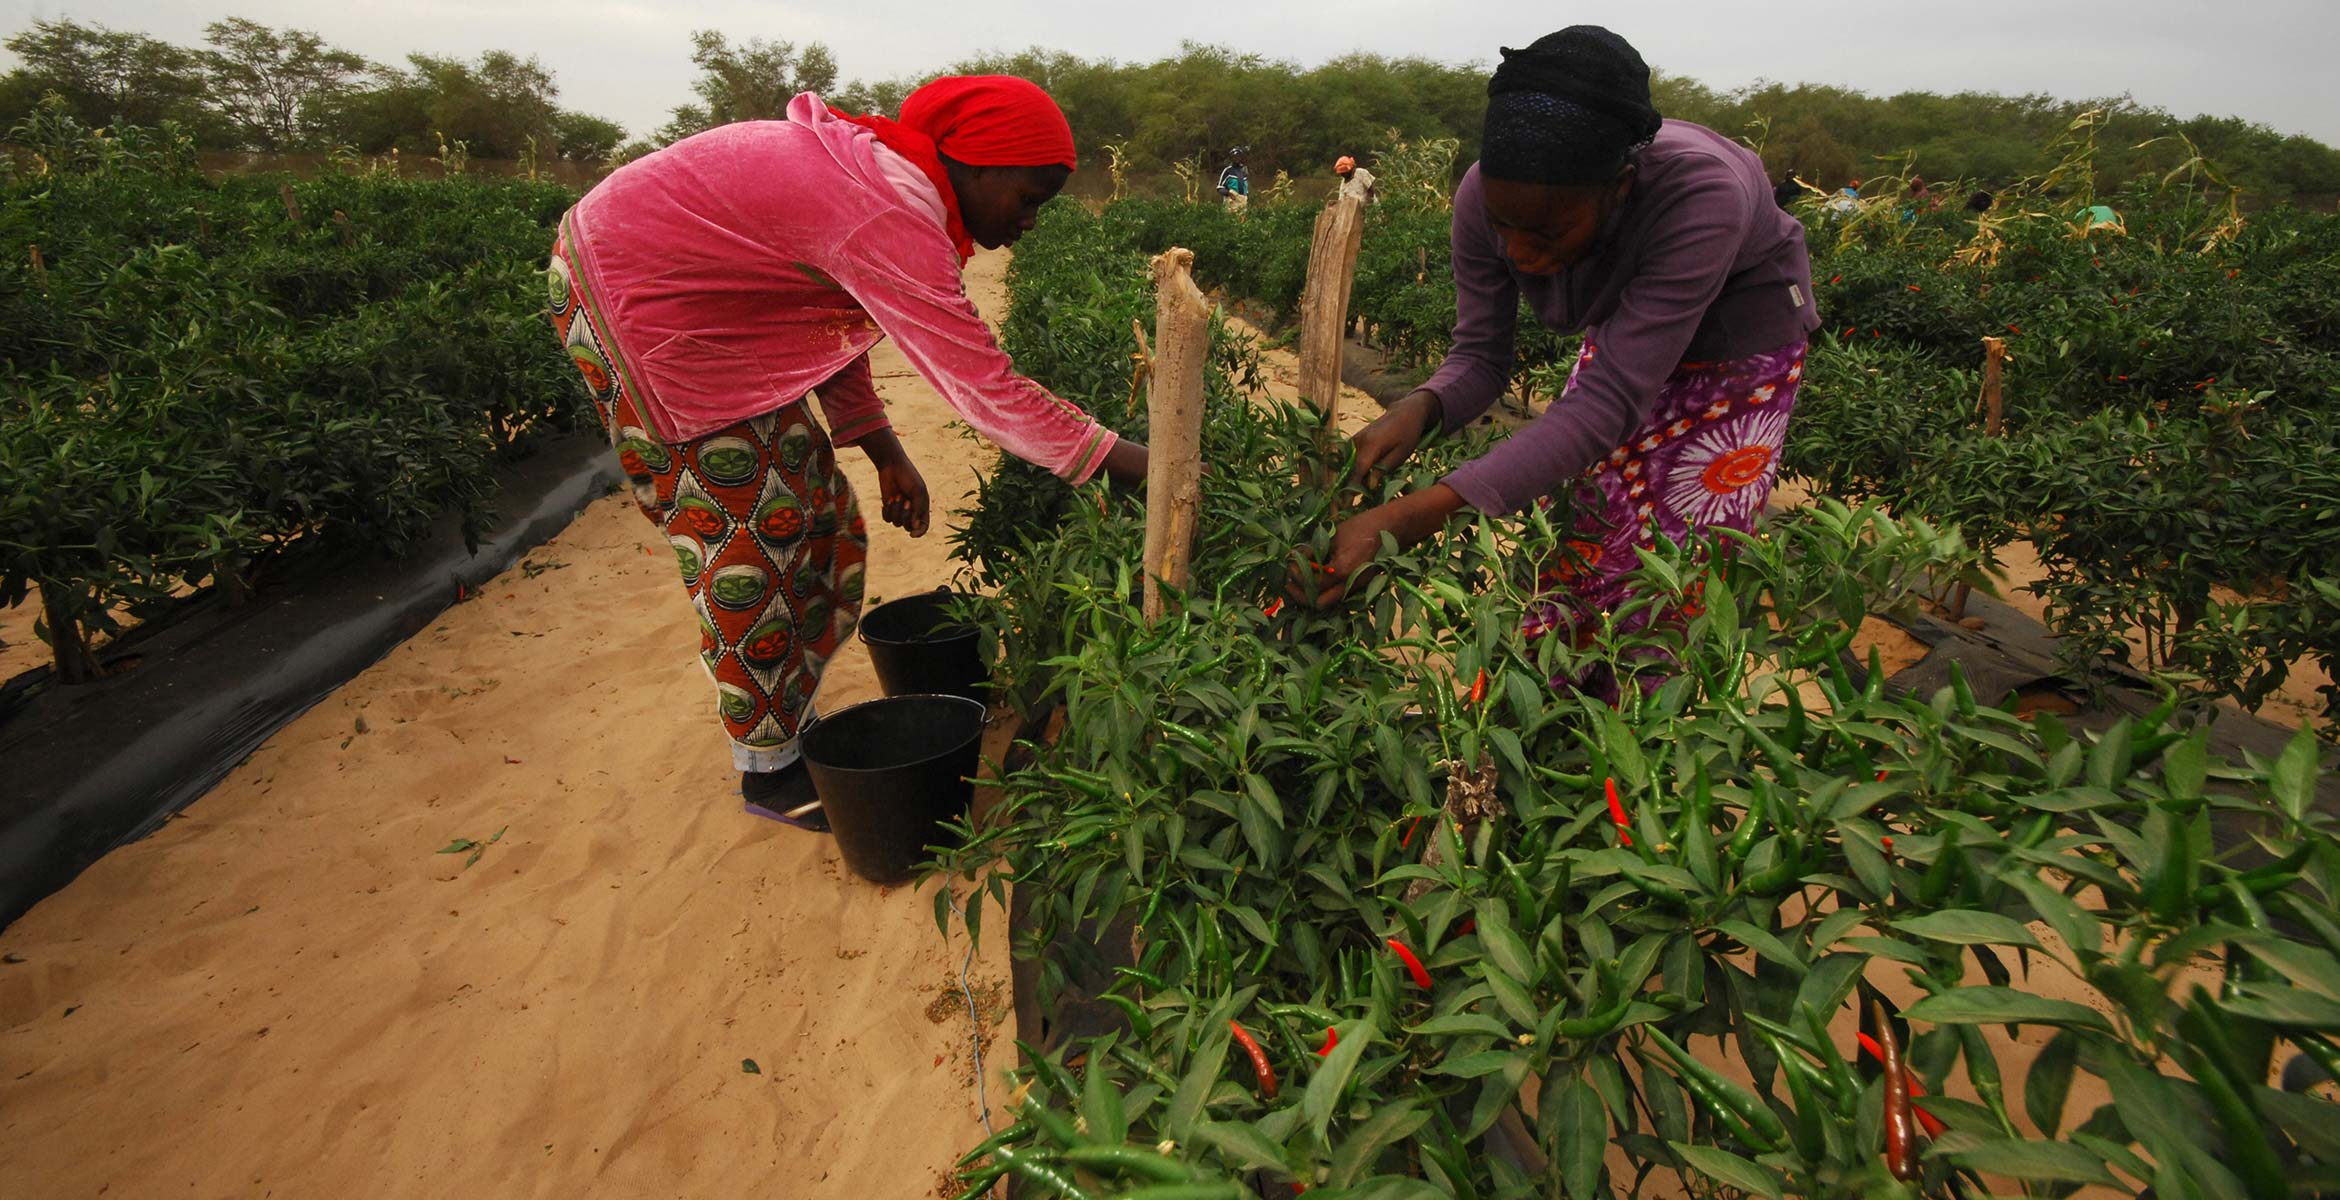 Photograph of Chilli plants growing on the Barfoots Senegal farm SCL